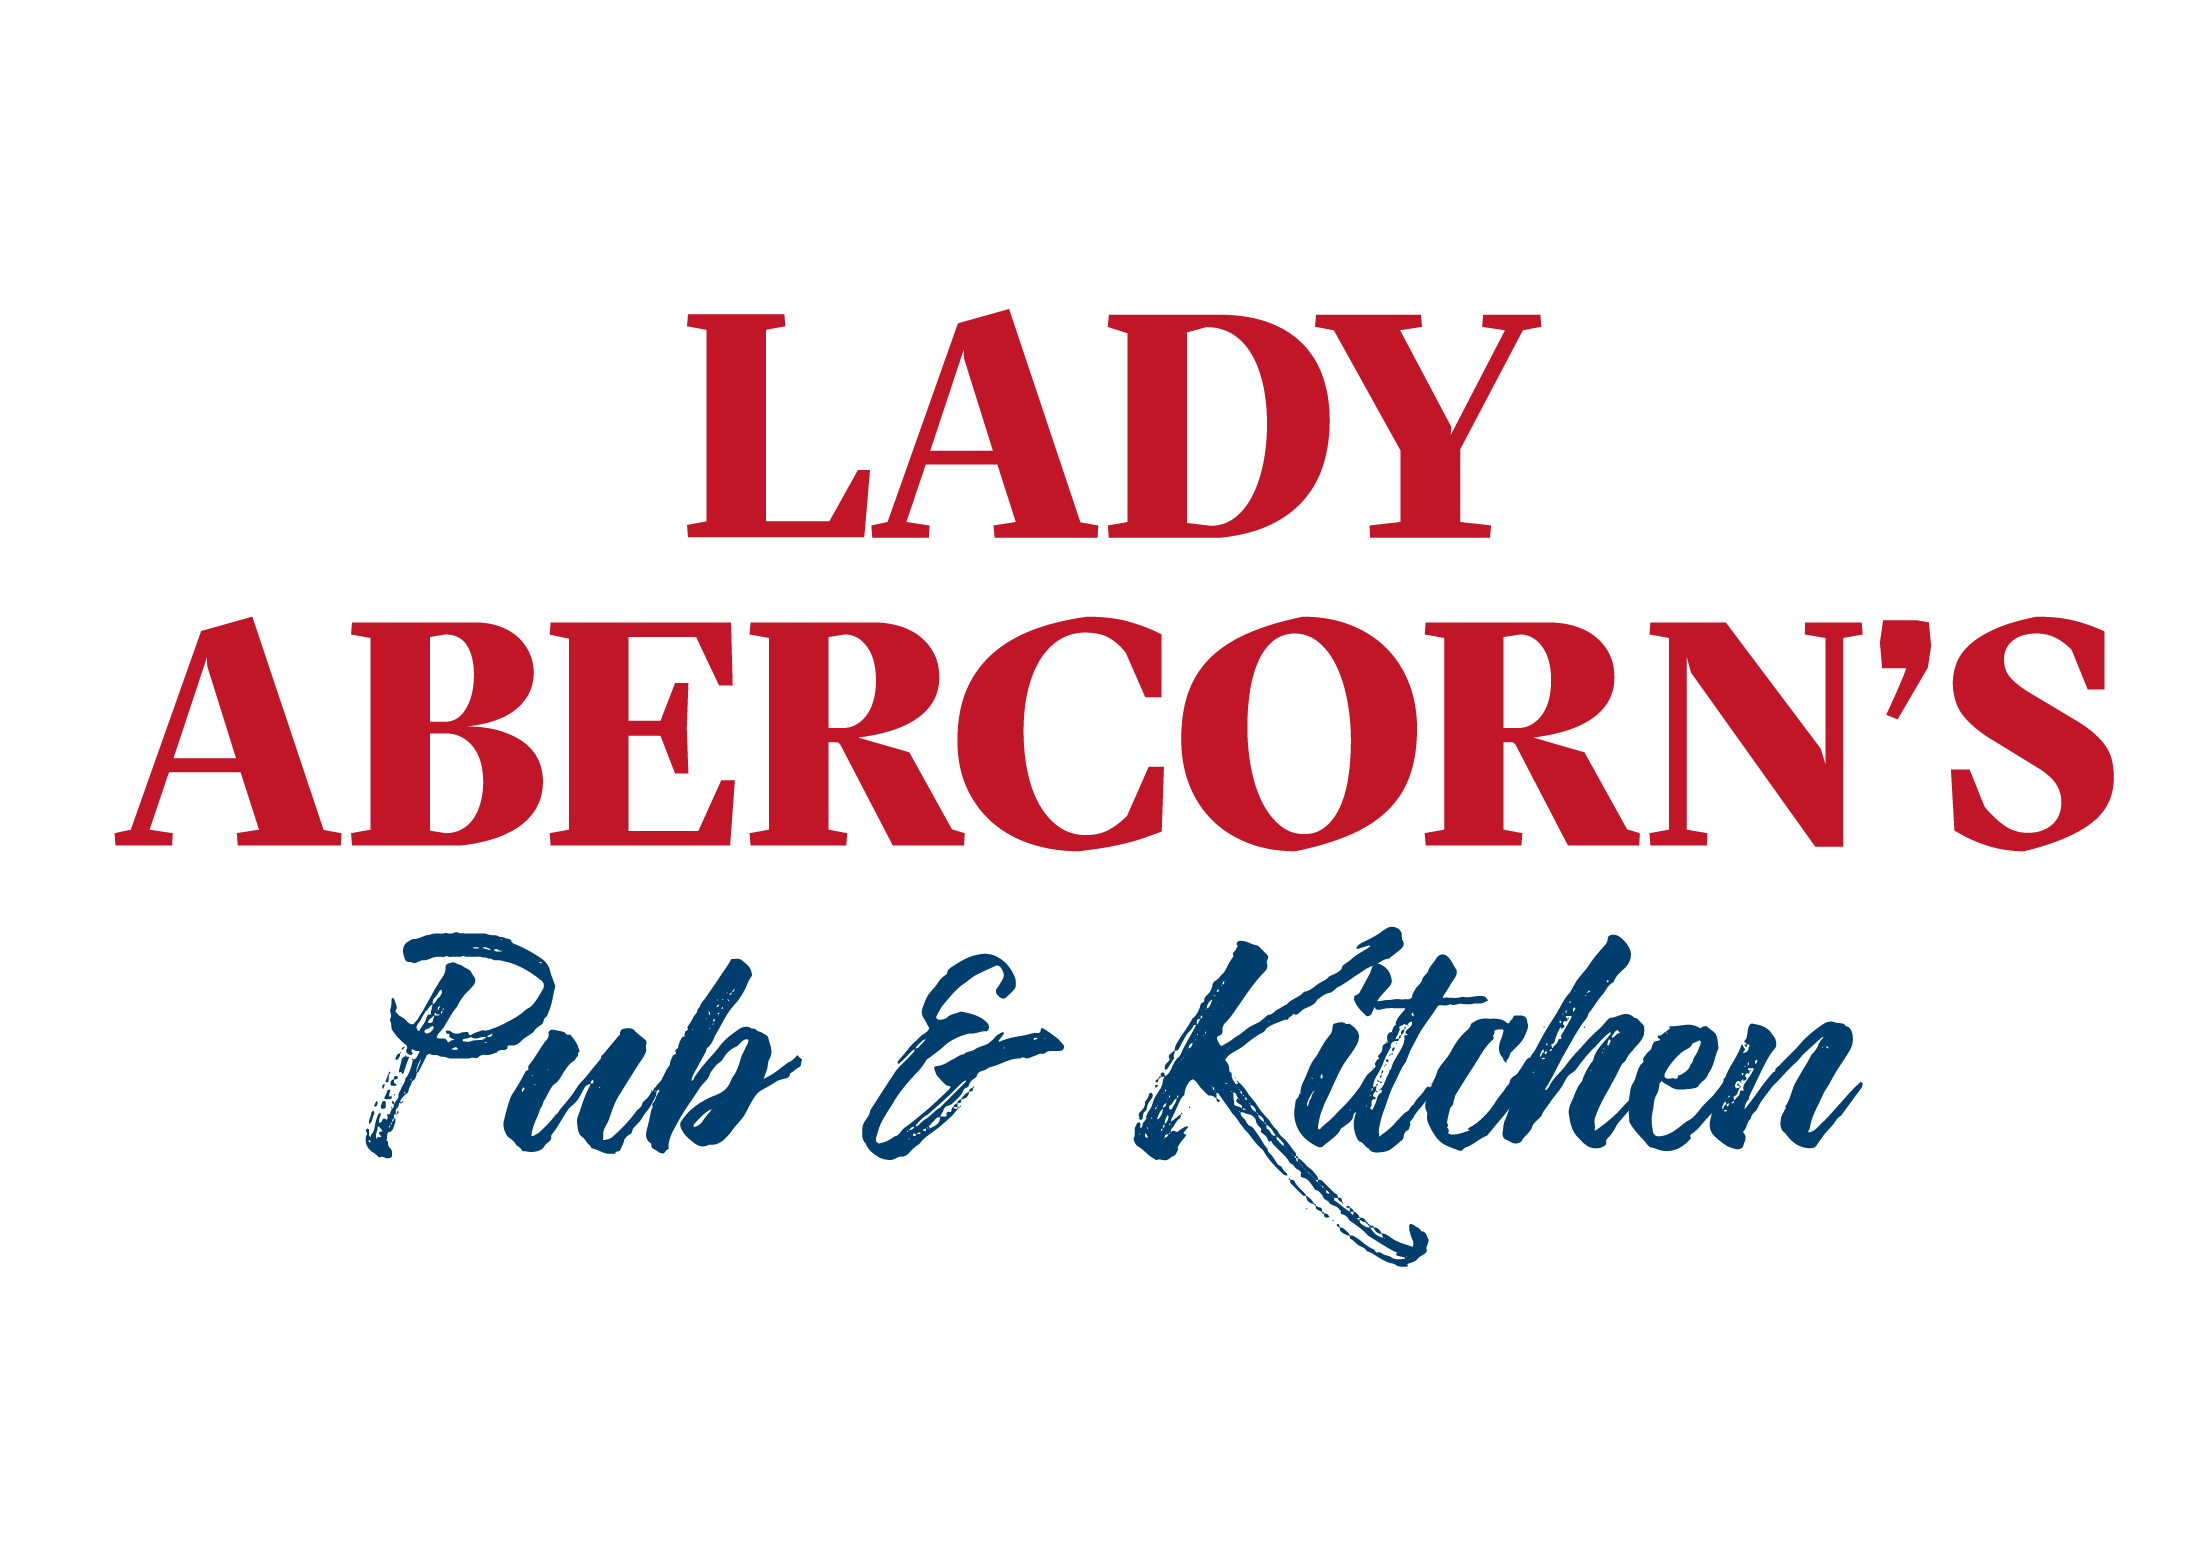 Lady Abercorn's Pub & Kitchen